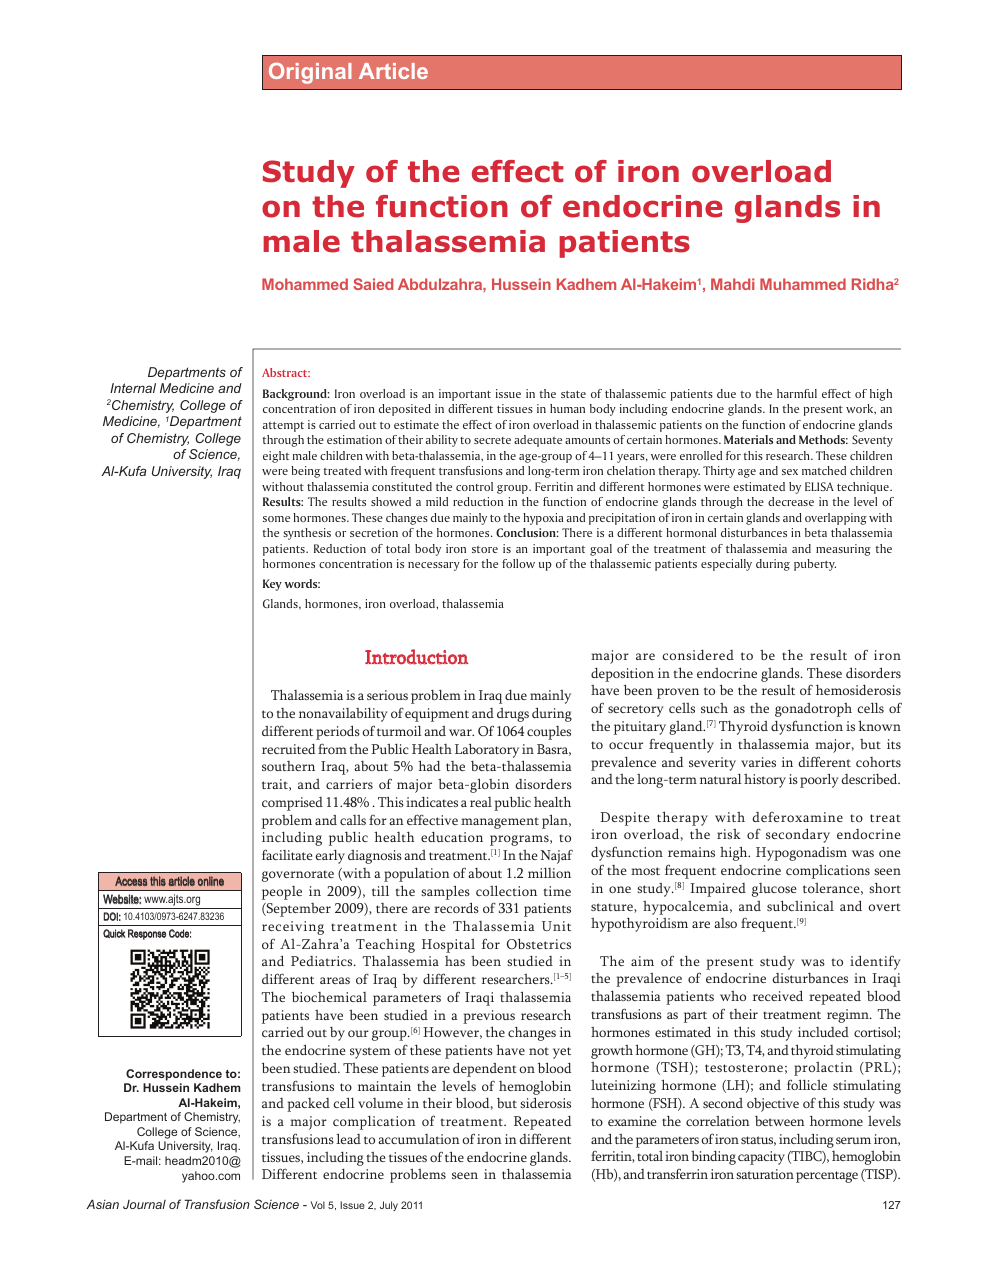 Study Of The Effect Of Iron Overload On The Function Of Endocrine